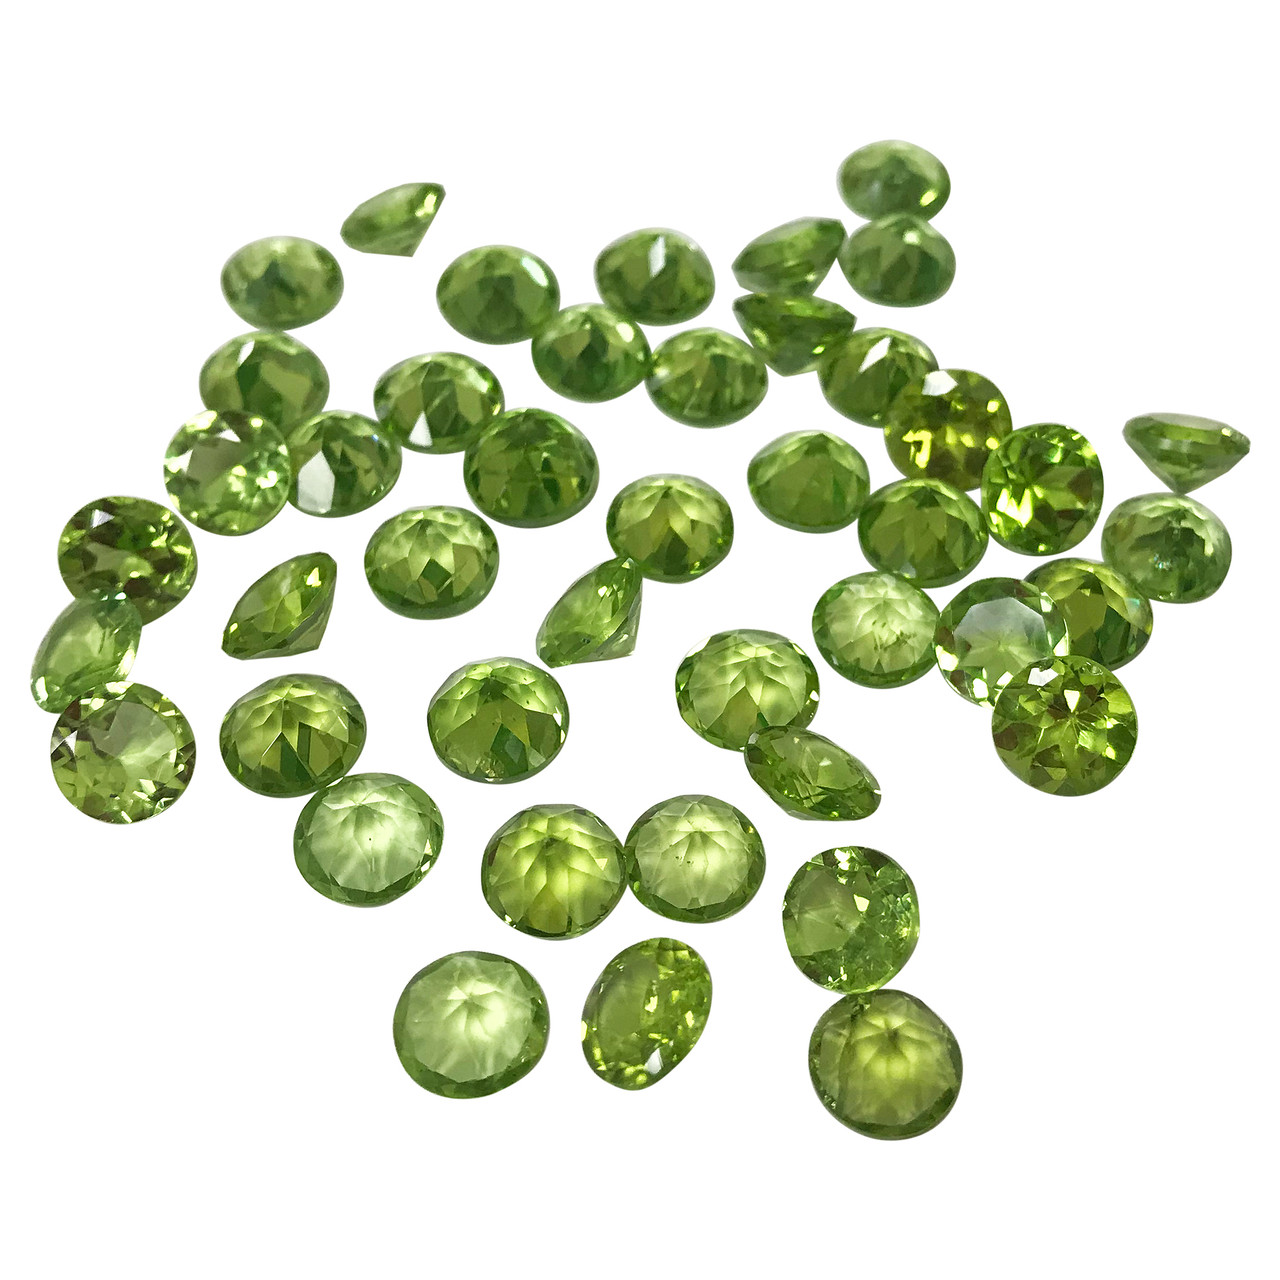 7mm Round Faceted Green Natural Peridot